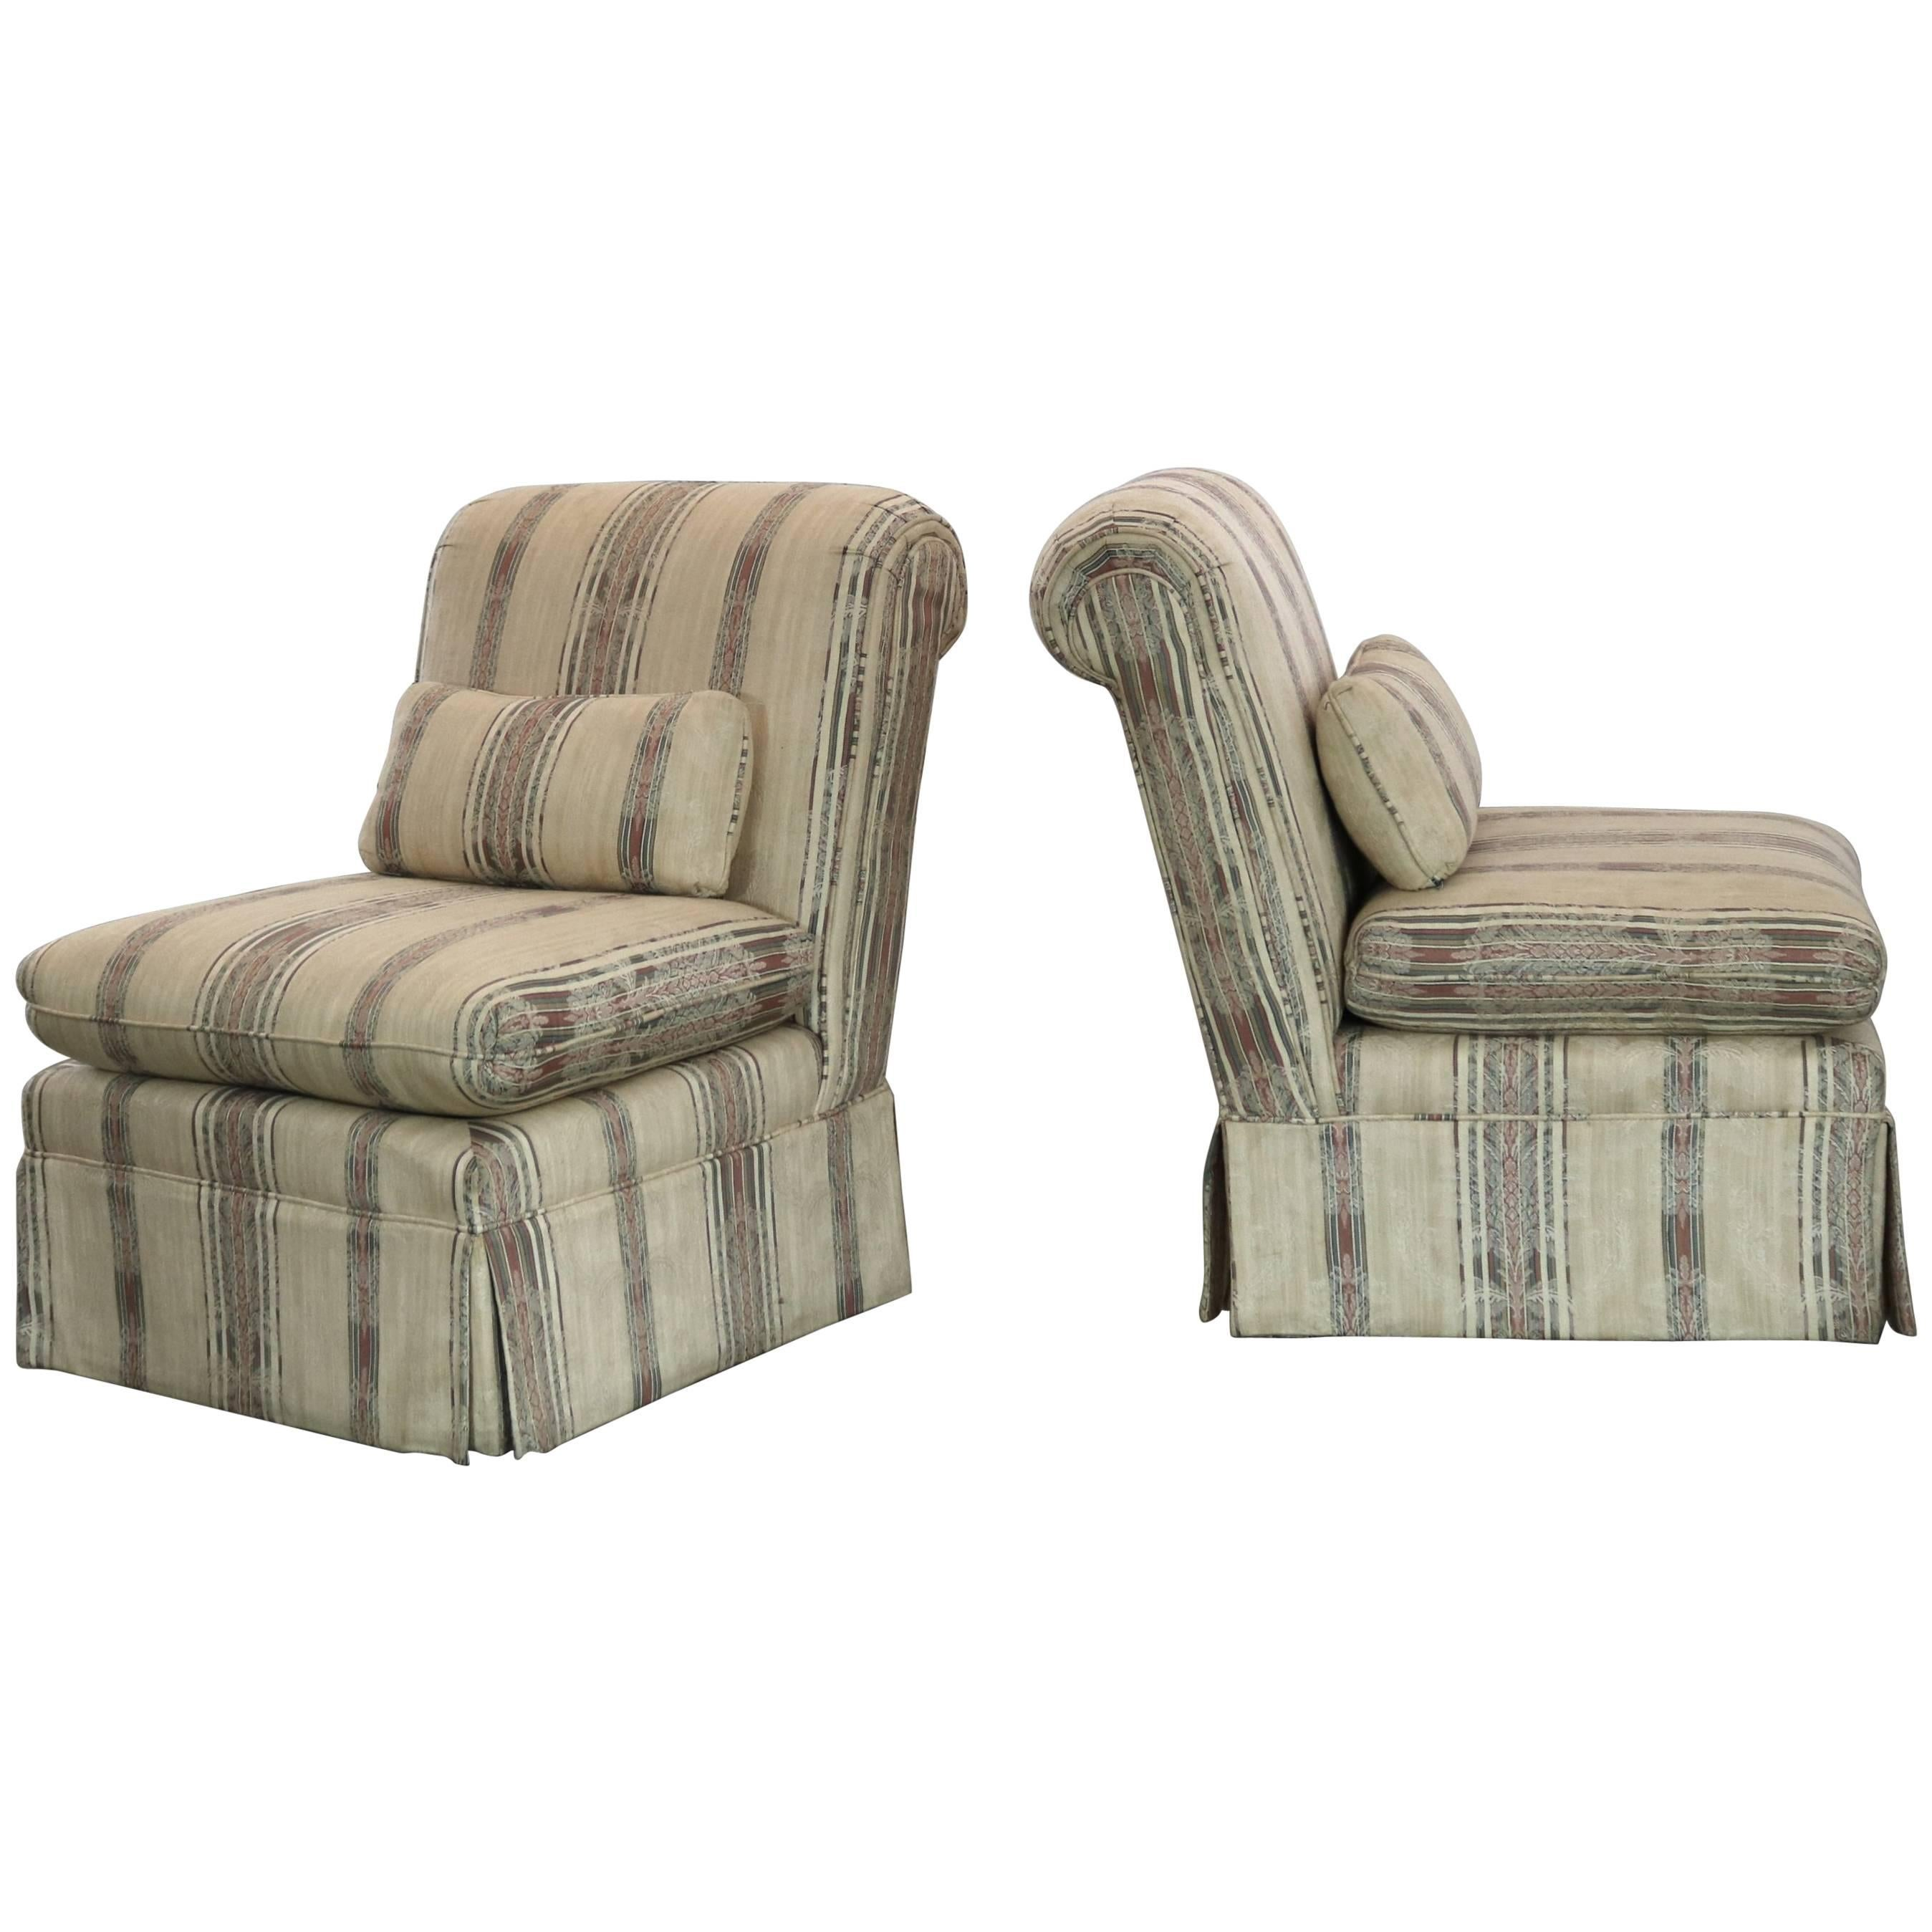 Striped Roll Back Slipper Chairs A Vintage Pair For Sale